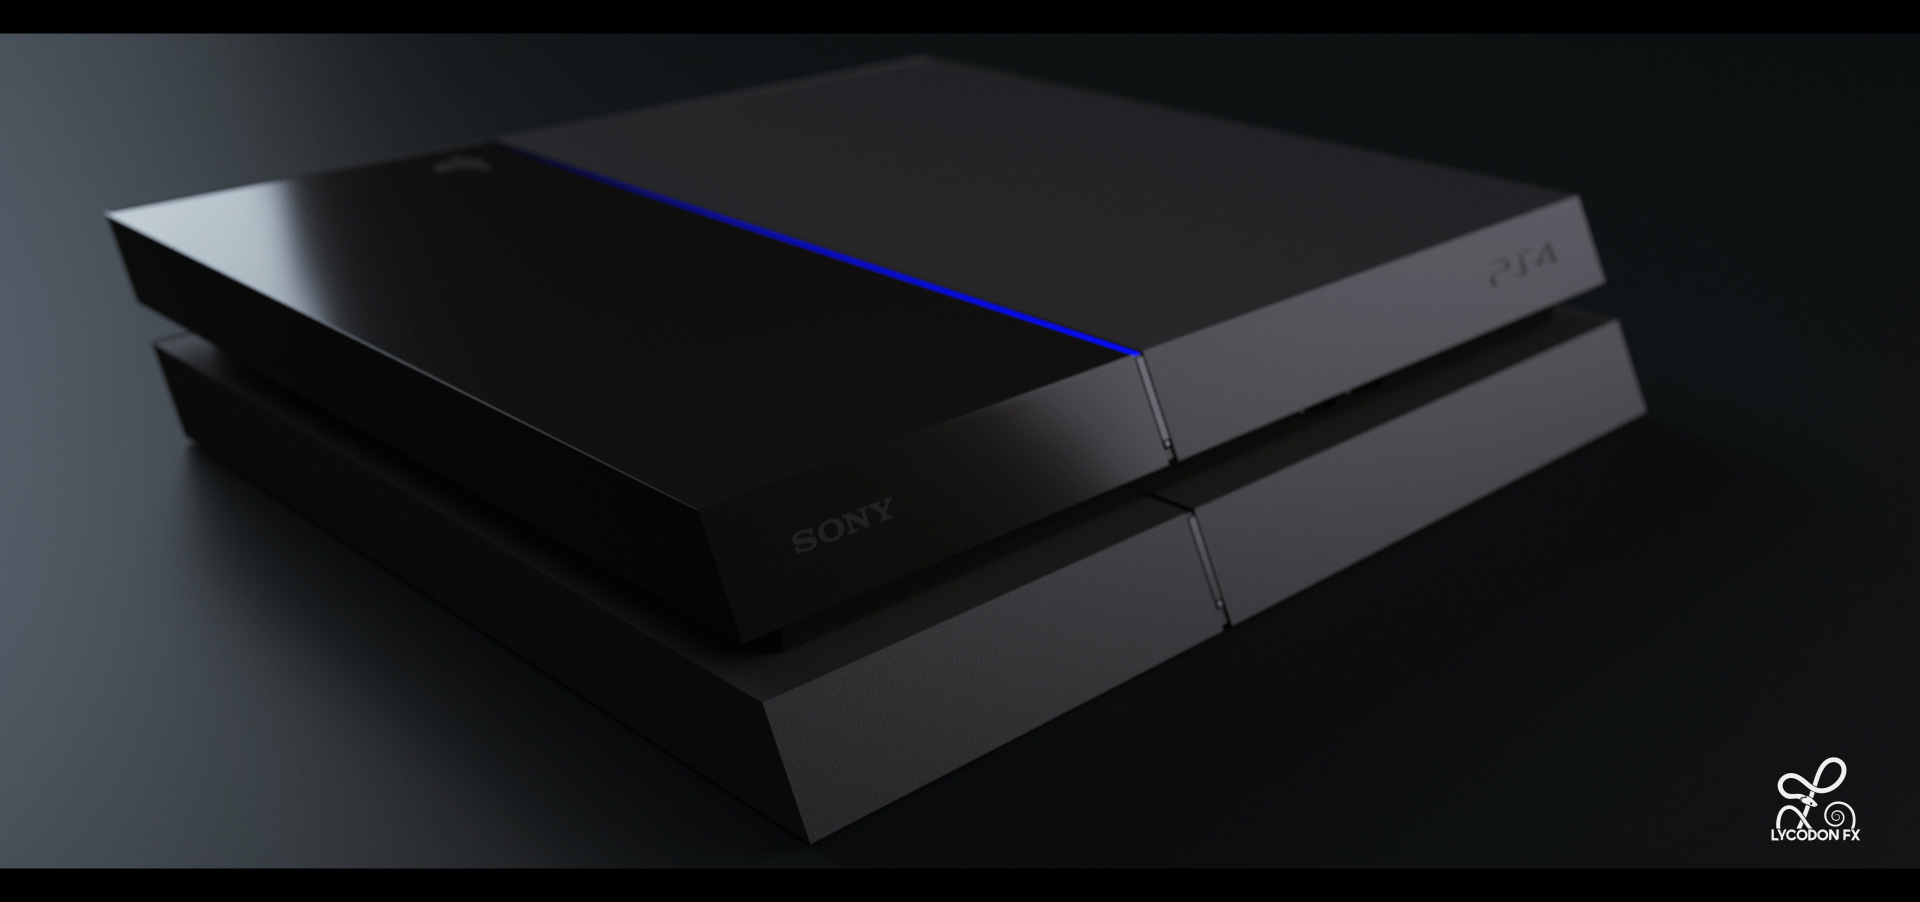 Ps4 Product Render For Print Advert Lycodonfx Portfolio